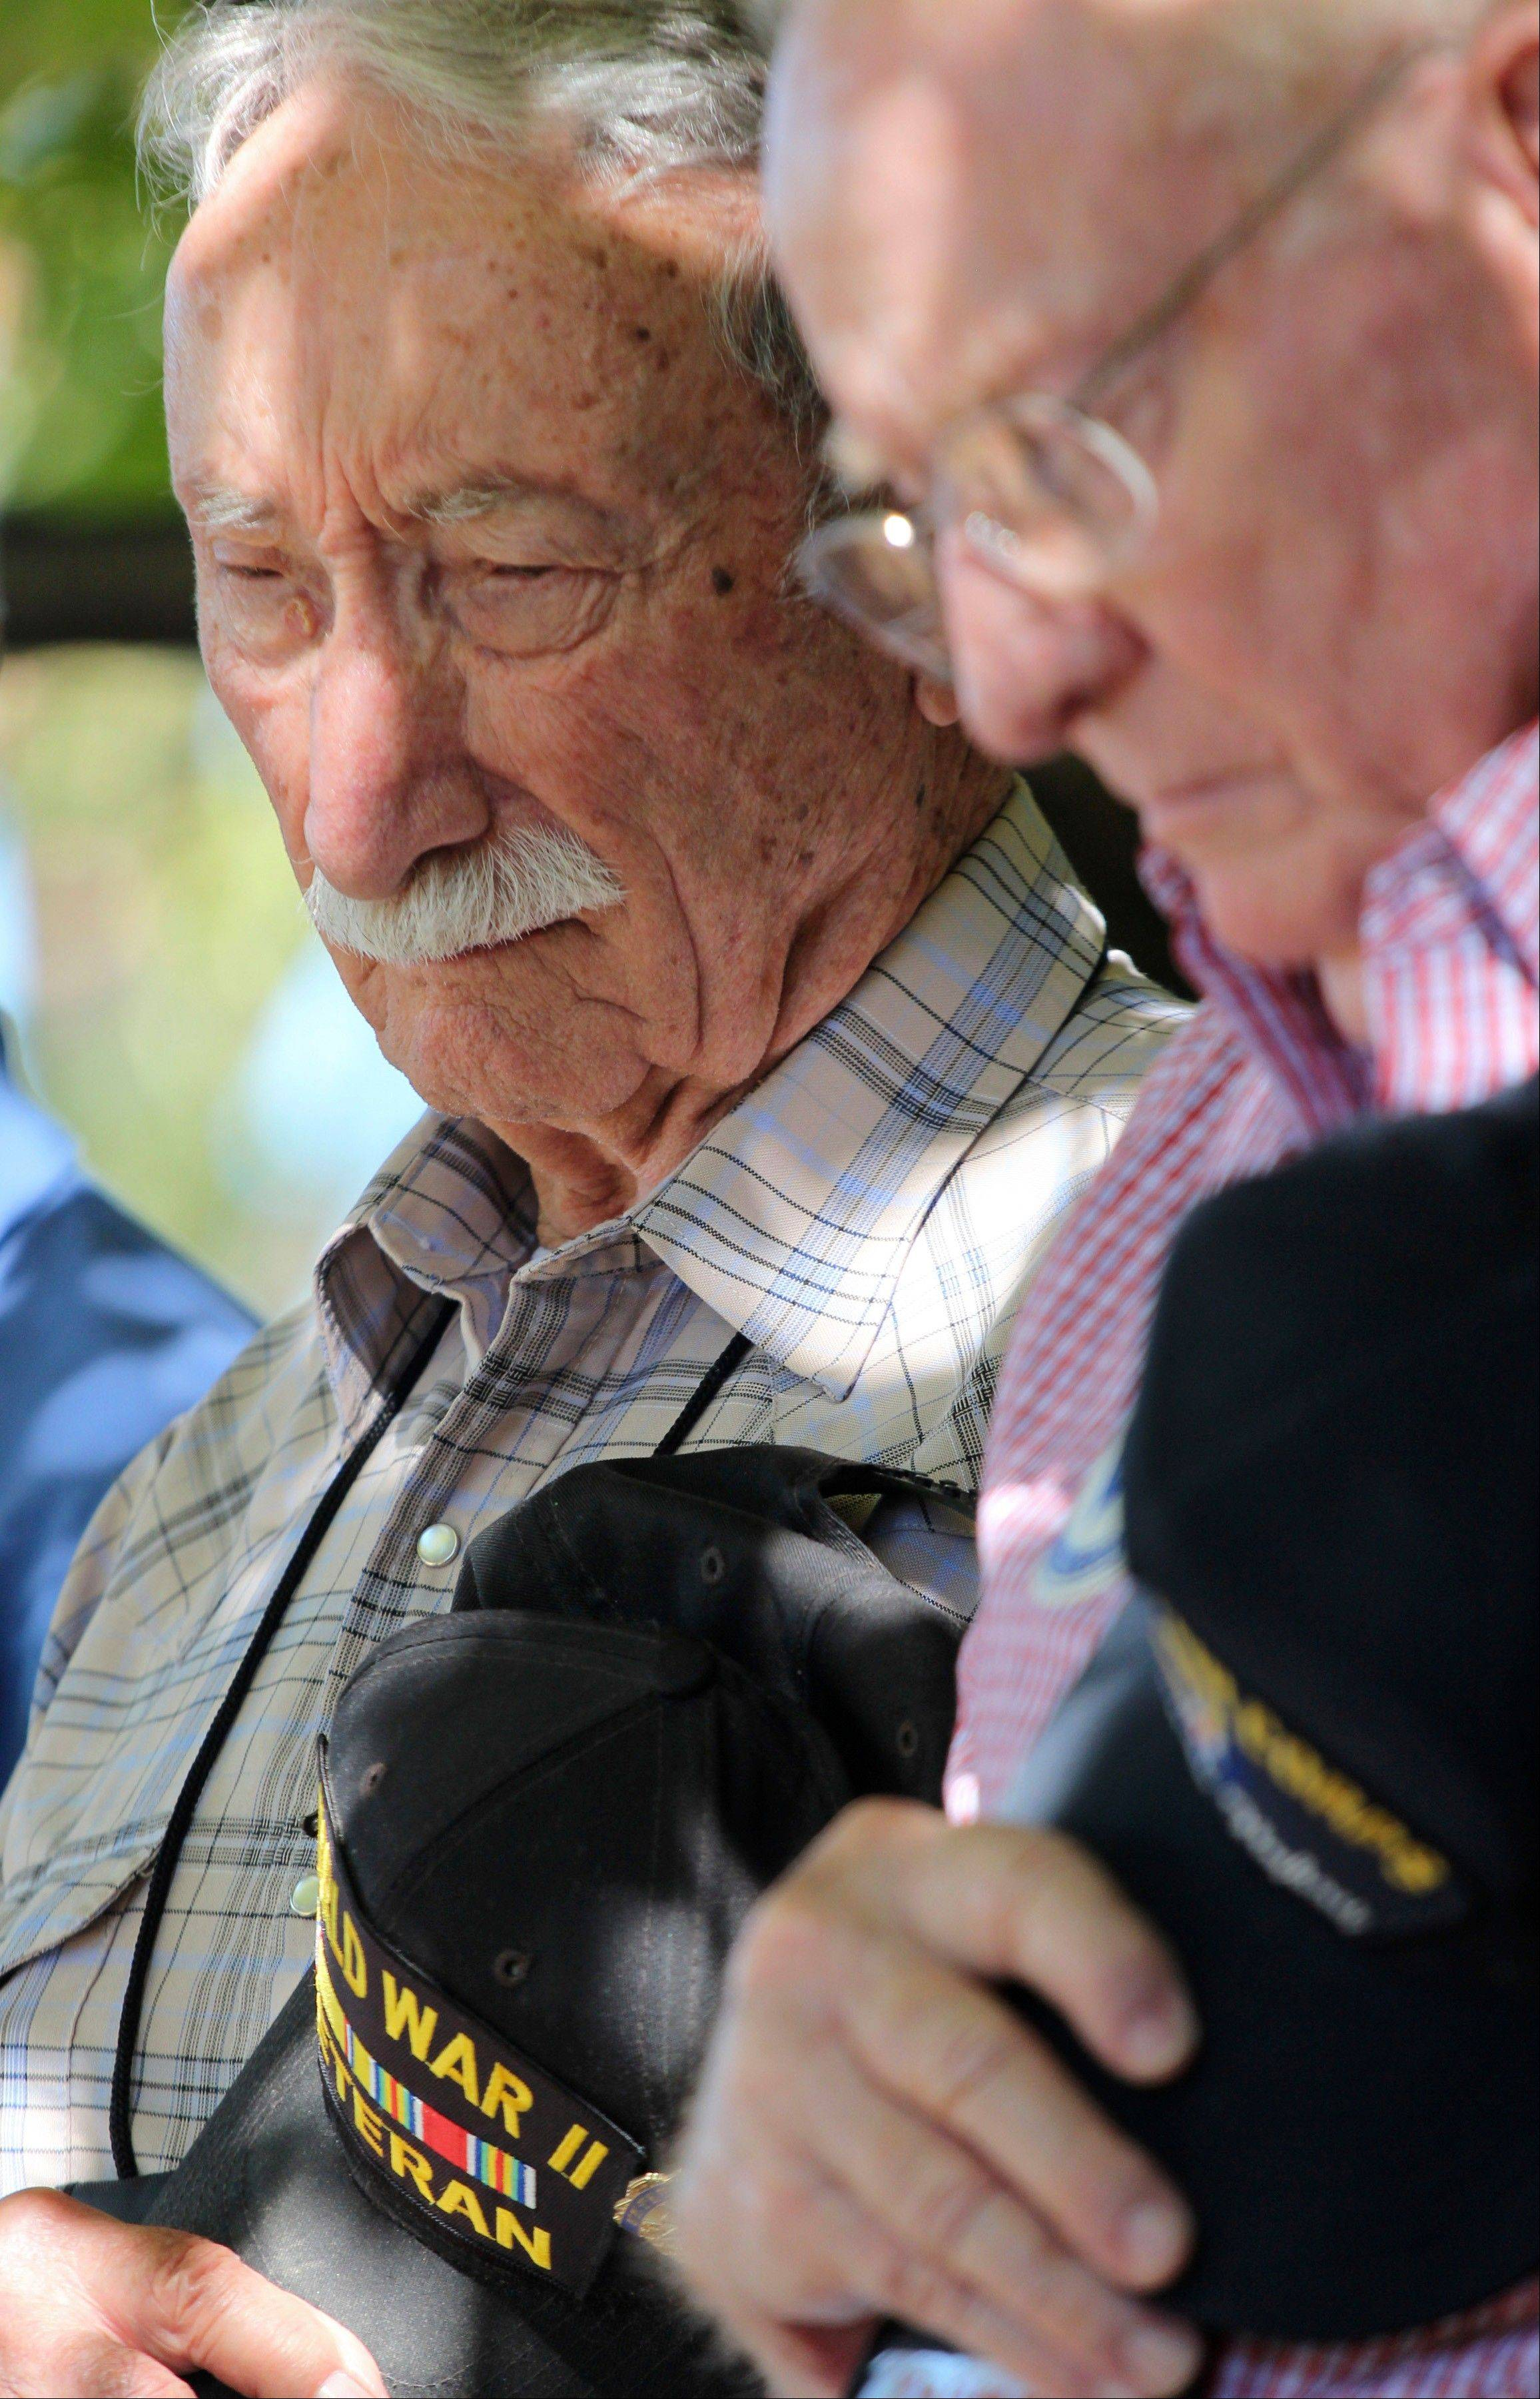 In this Sept. 27, 2013 photo, George Williams, left, and Robert Crouse, bow their heads as they take part in a memorial ceremony during a reunion outside the U.S. Air Force Museum at Wright Patterson Air Force base in Dayton, Ohio. As many as 11,000 people, including Williams and Crouse, served in the 57th Bomb Wing that flew missions over German-held Europe from North Africa and the island of Corsica during most of the war. Hundreds survive, according to wing historians and reunion organizers. Only nine veterans made it to this fall�s event.